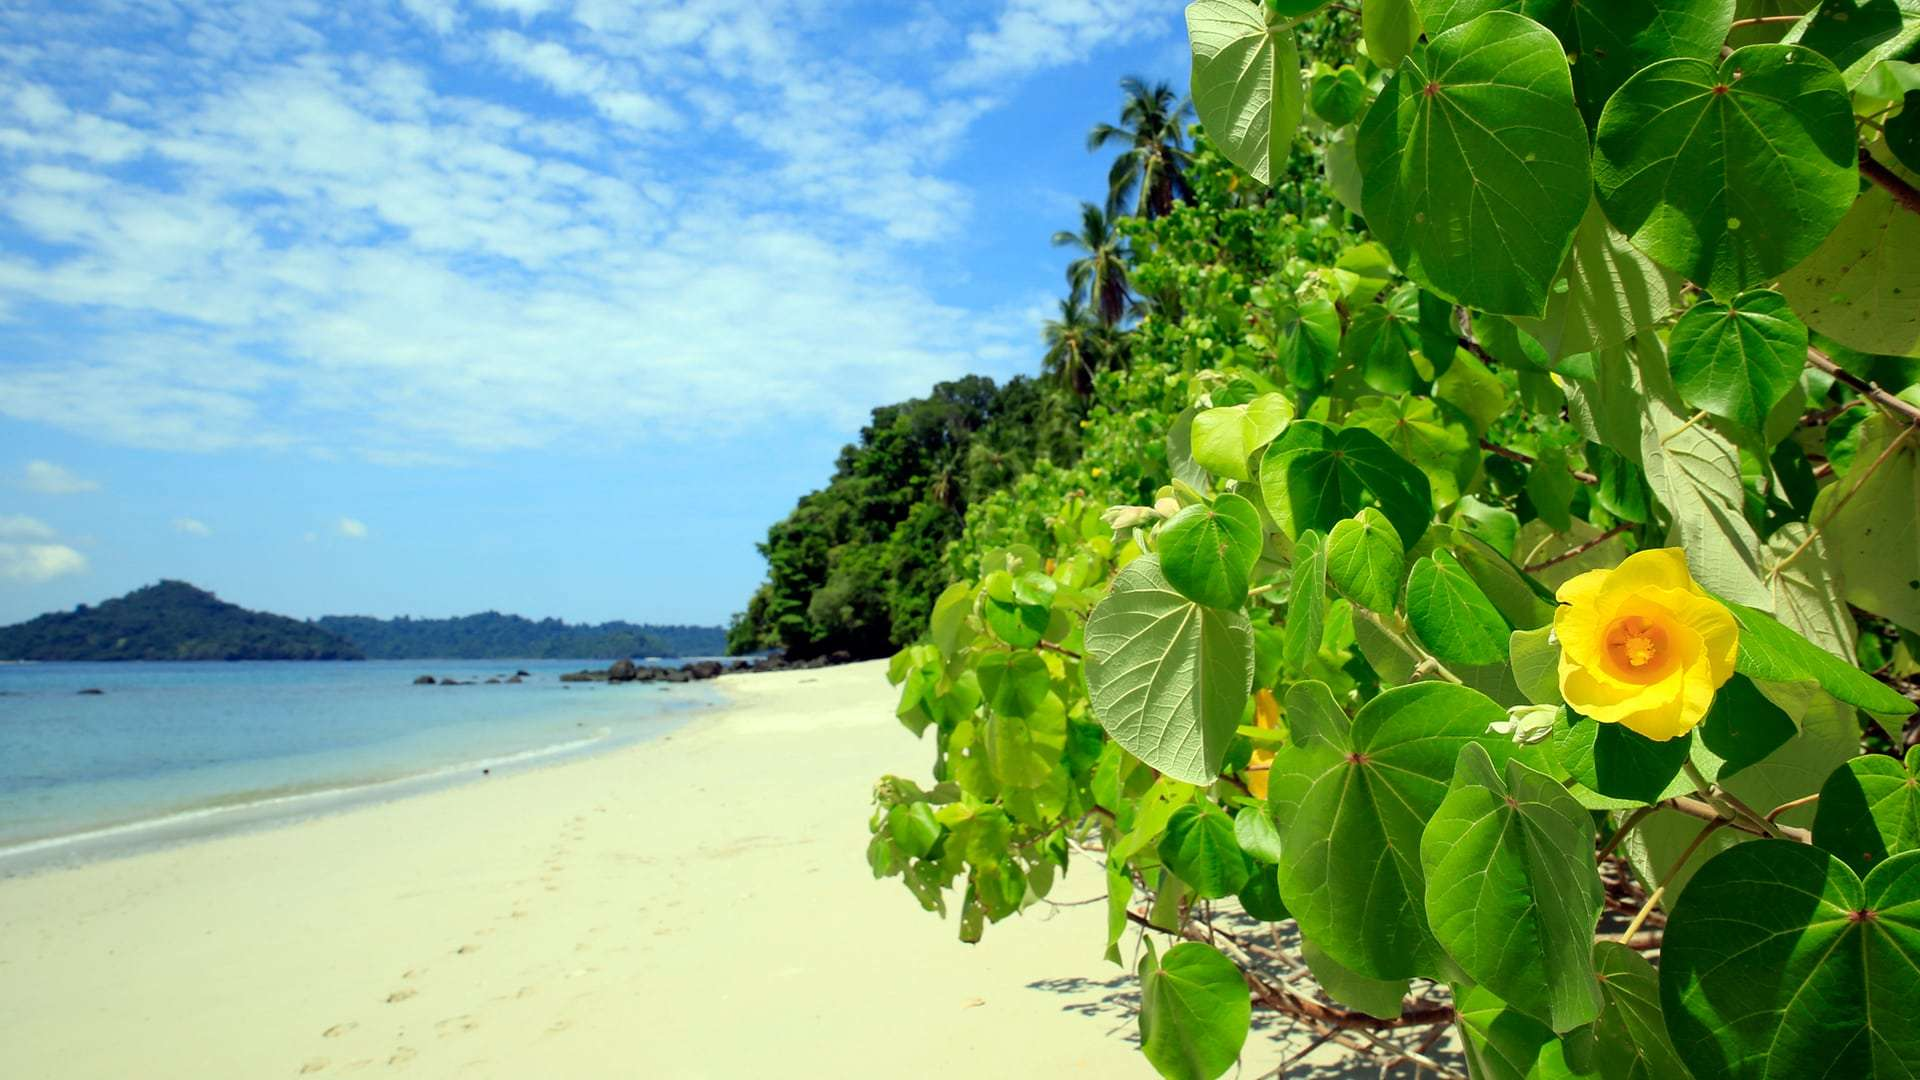 National Park Coiba